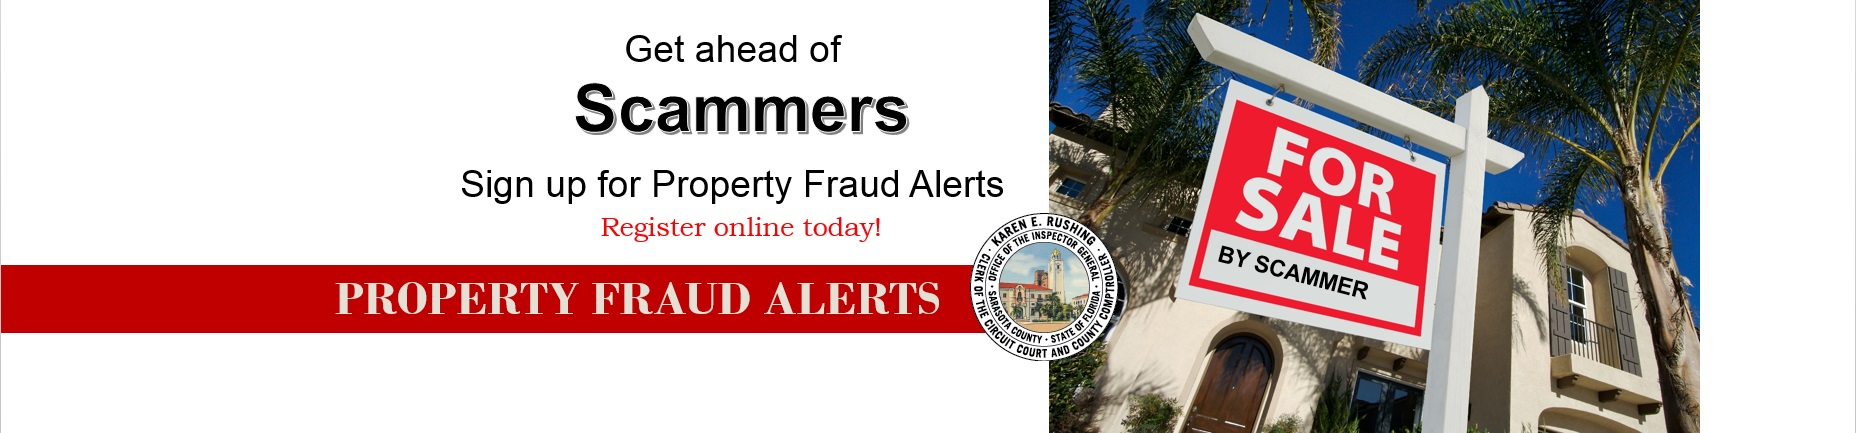 Get ahead of scammers. Sign up for Property Fraud Alert service.